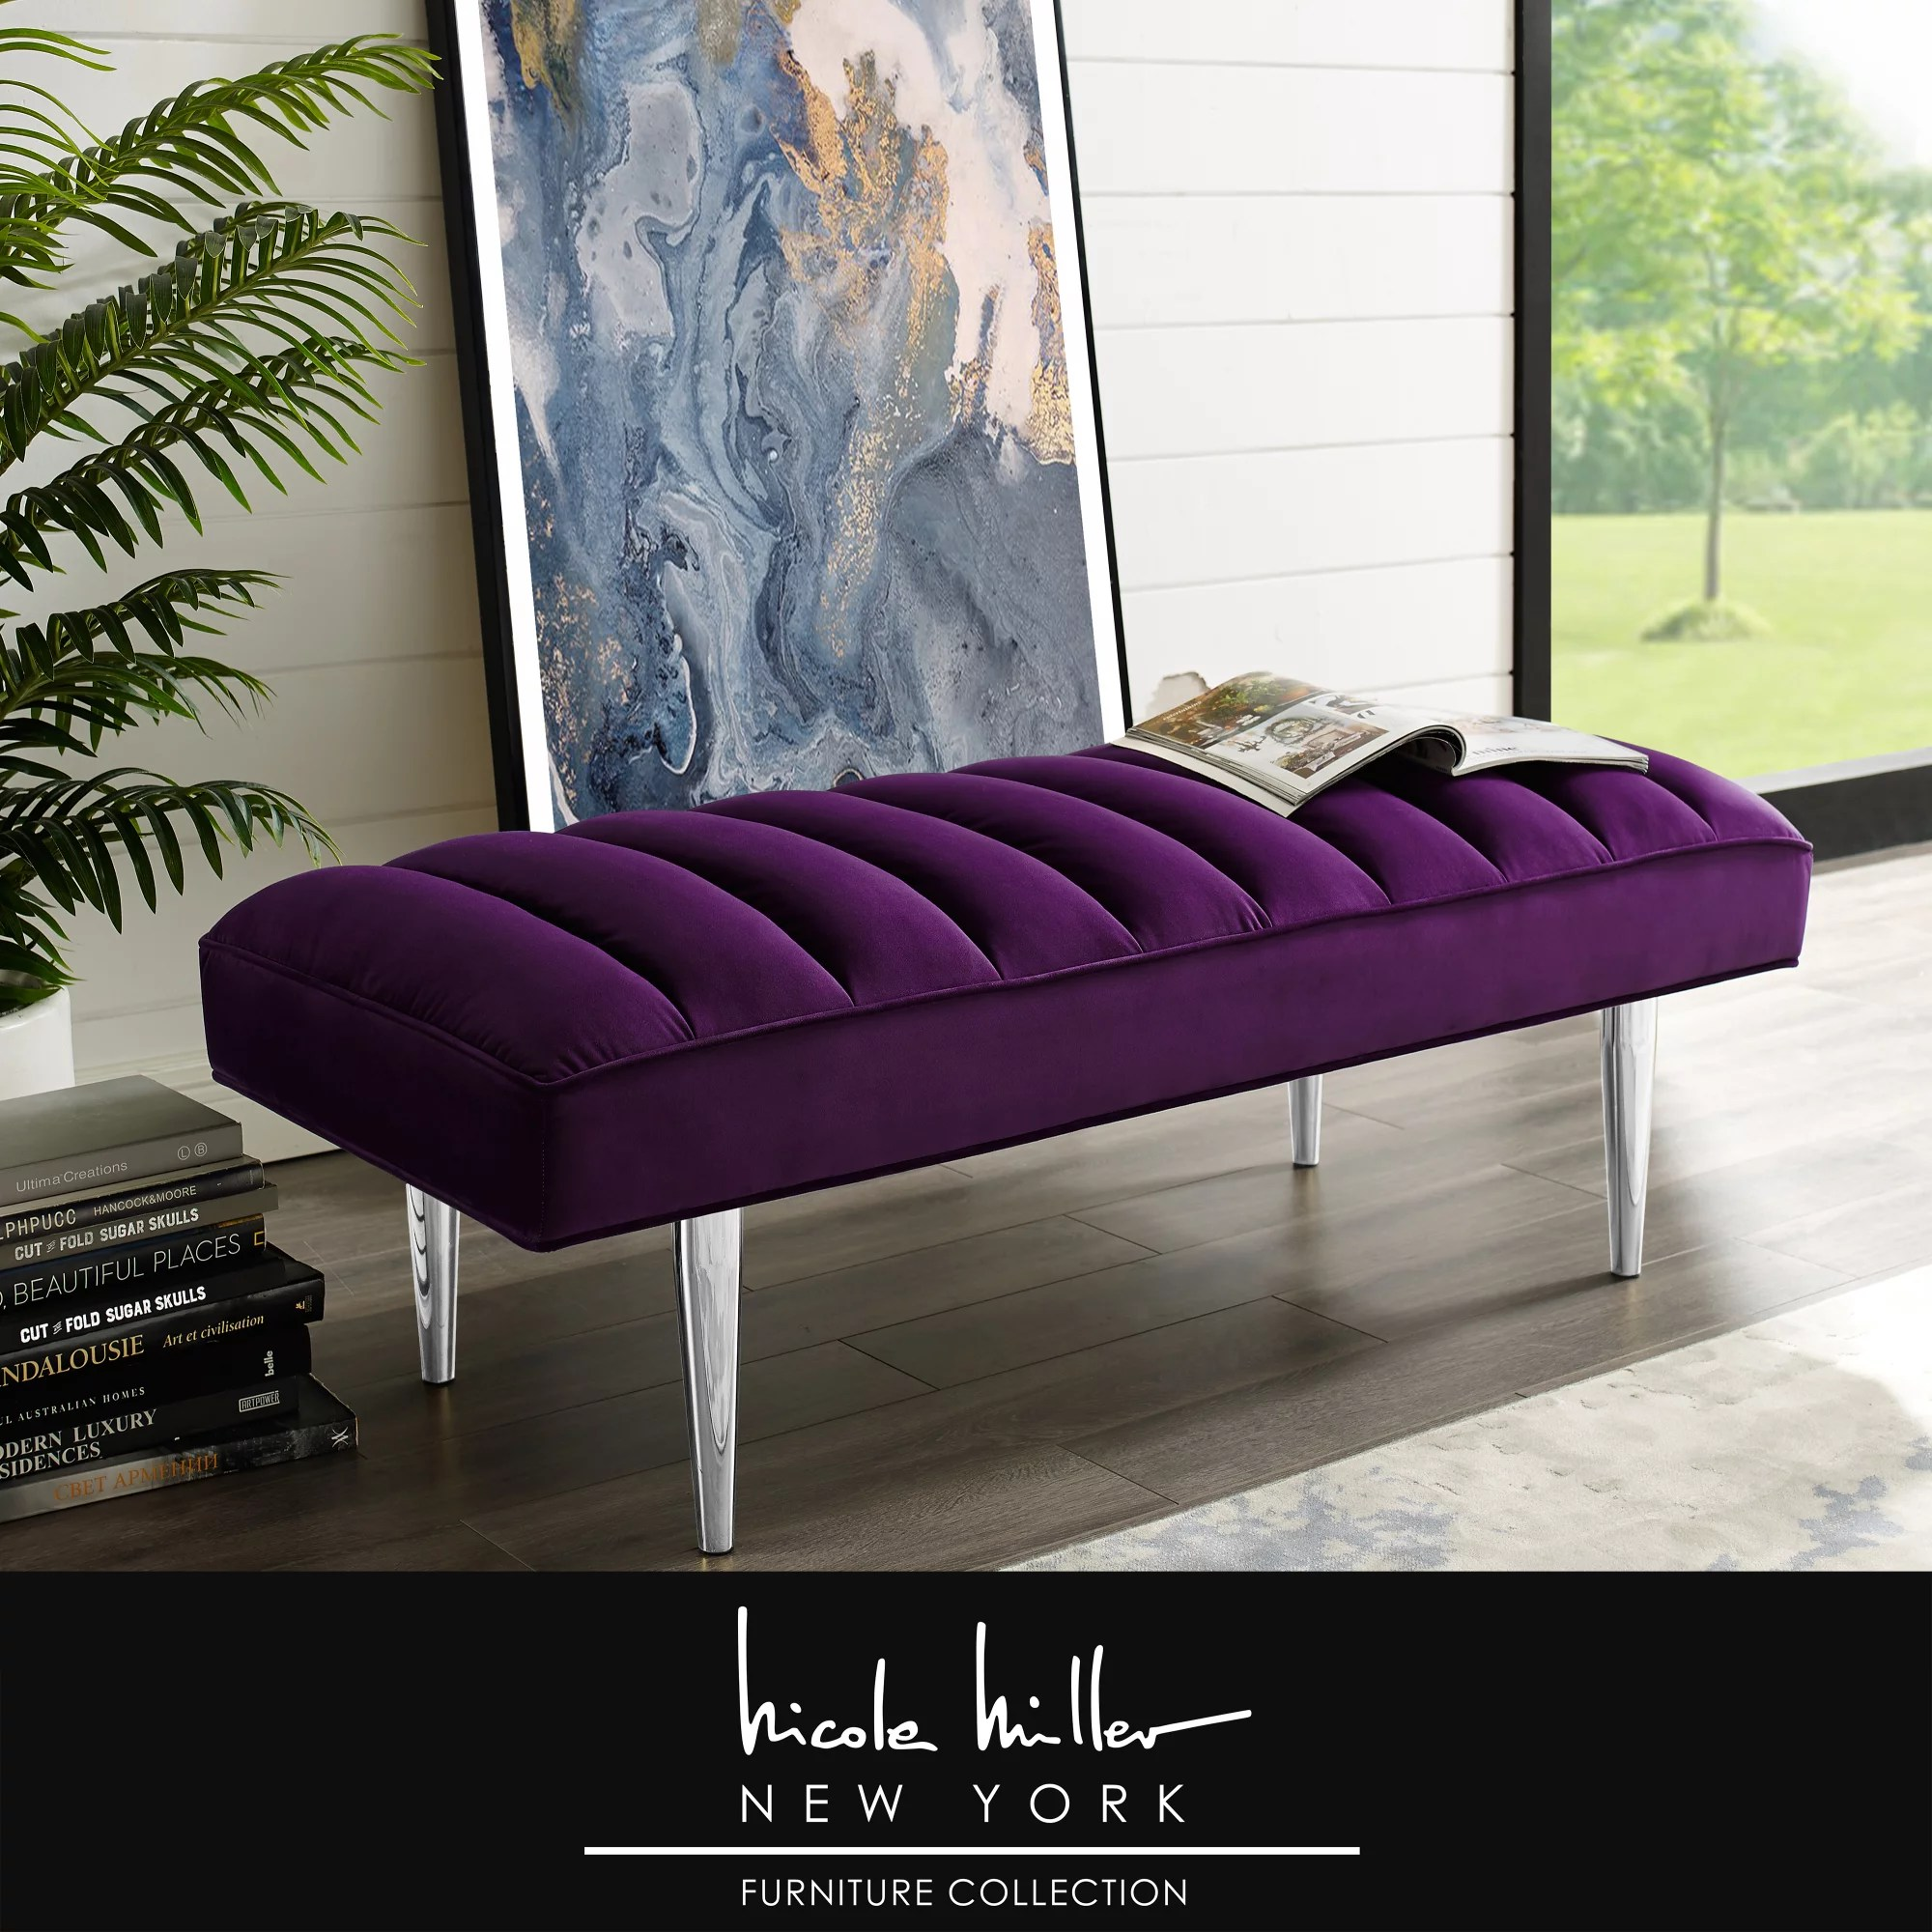 Nicole Miller Tadeo Velvet Bench Upholstered Channel Tufted Tapered Mirrorred Lacquer Finish Stainless Steel Leg Purple Chrome Walmart Canada